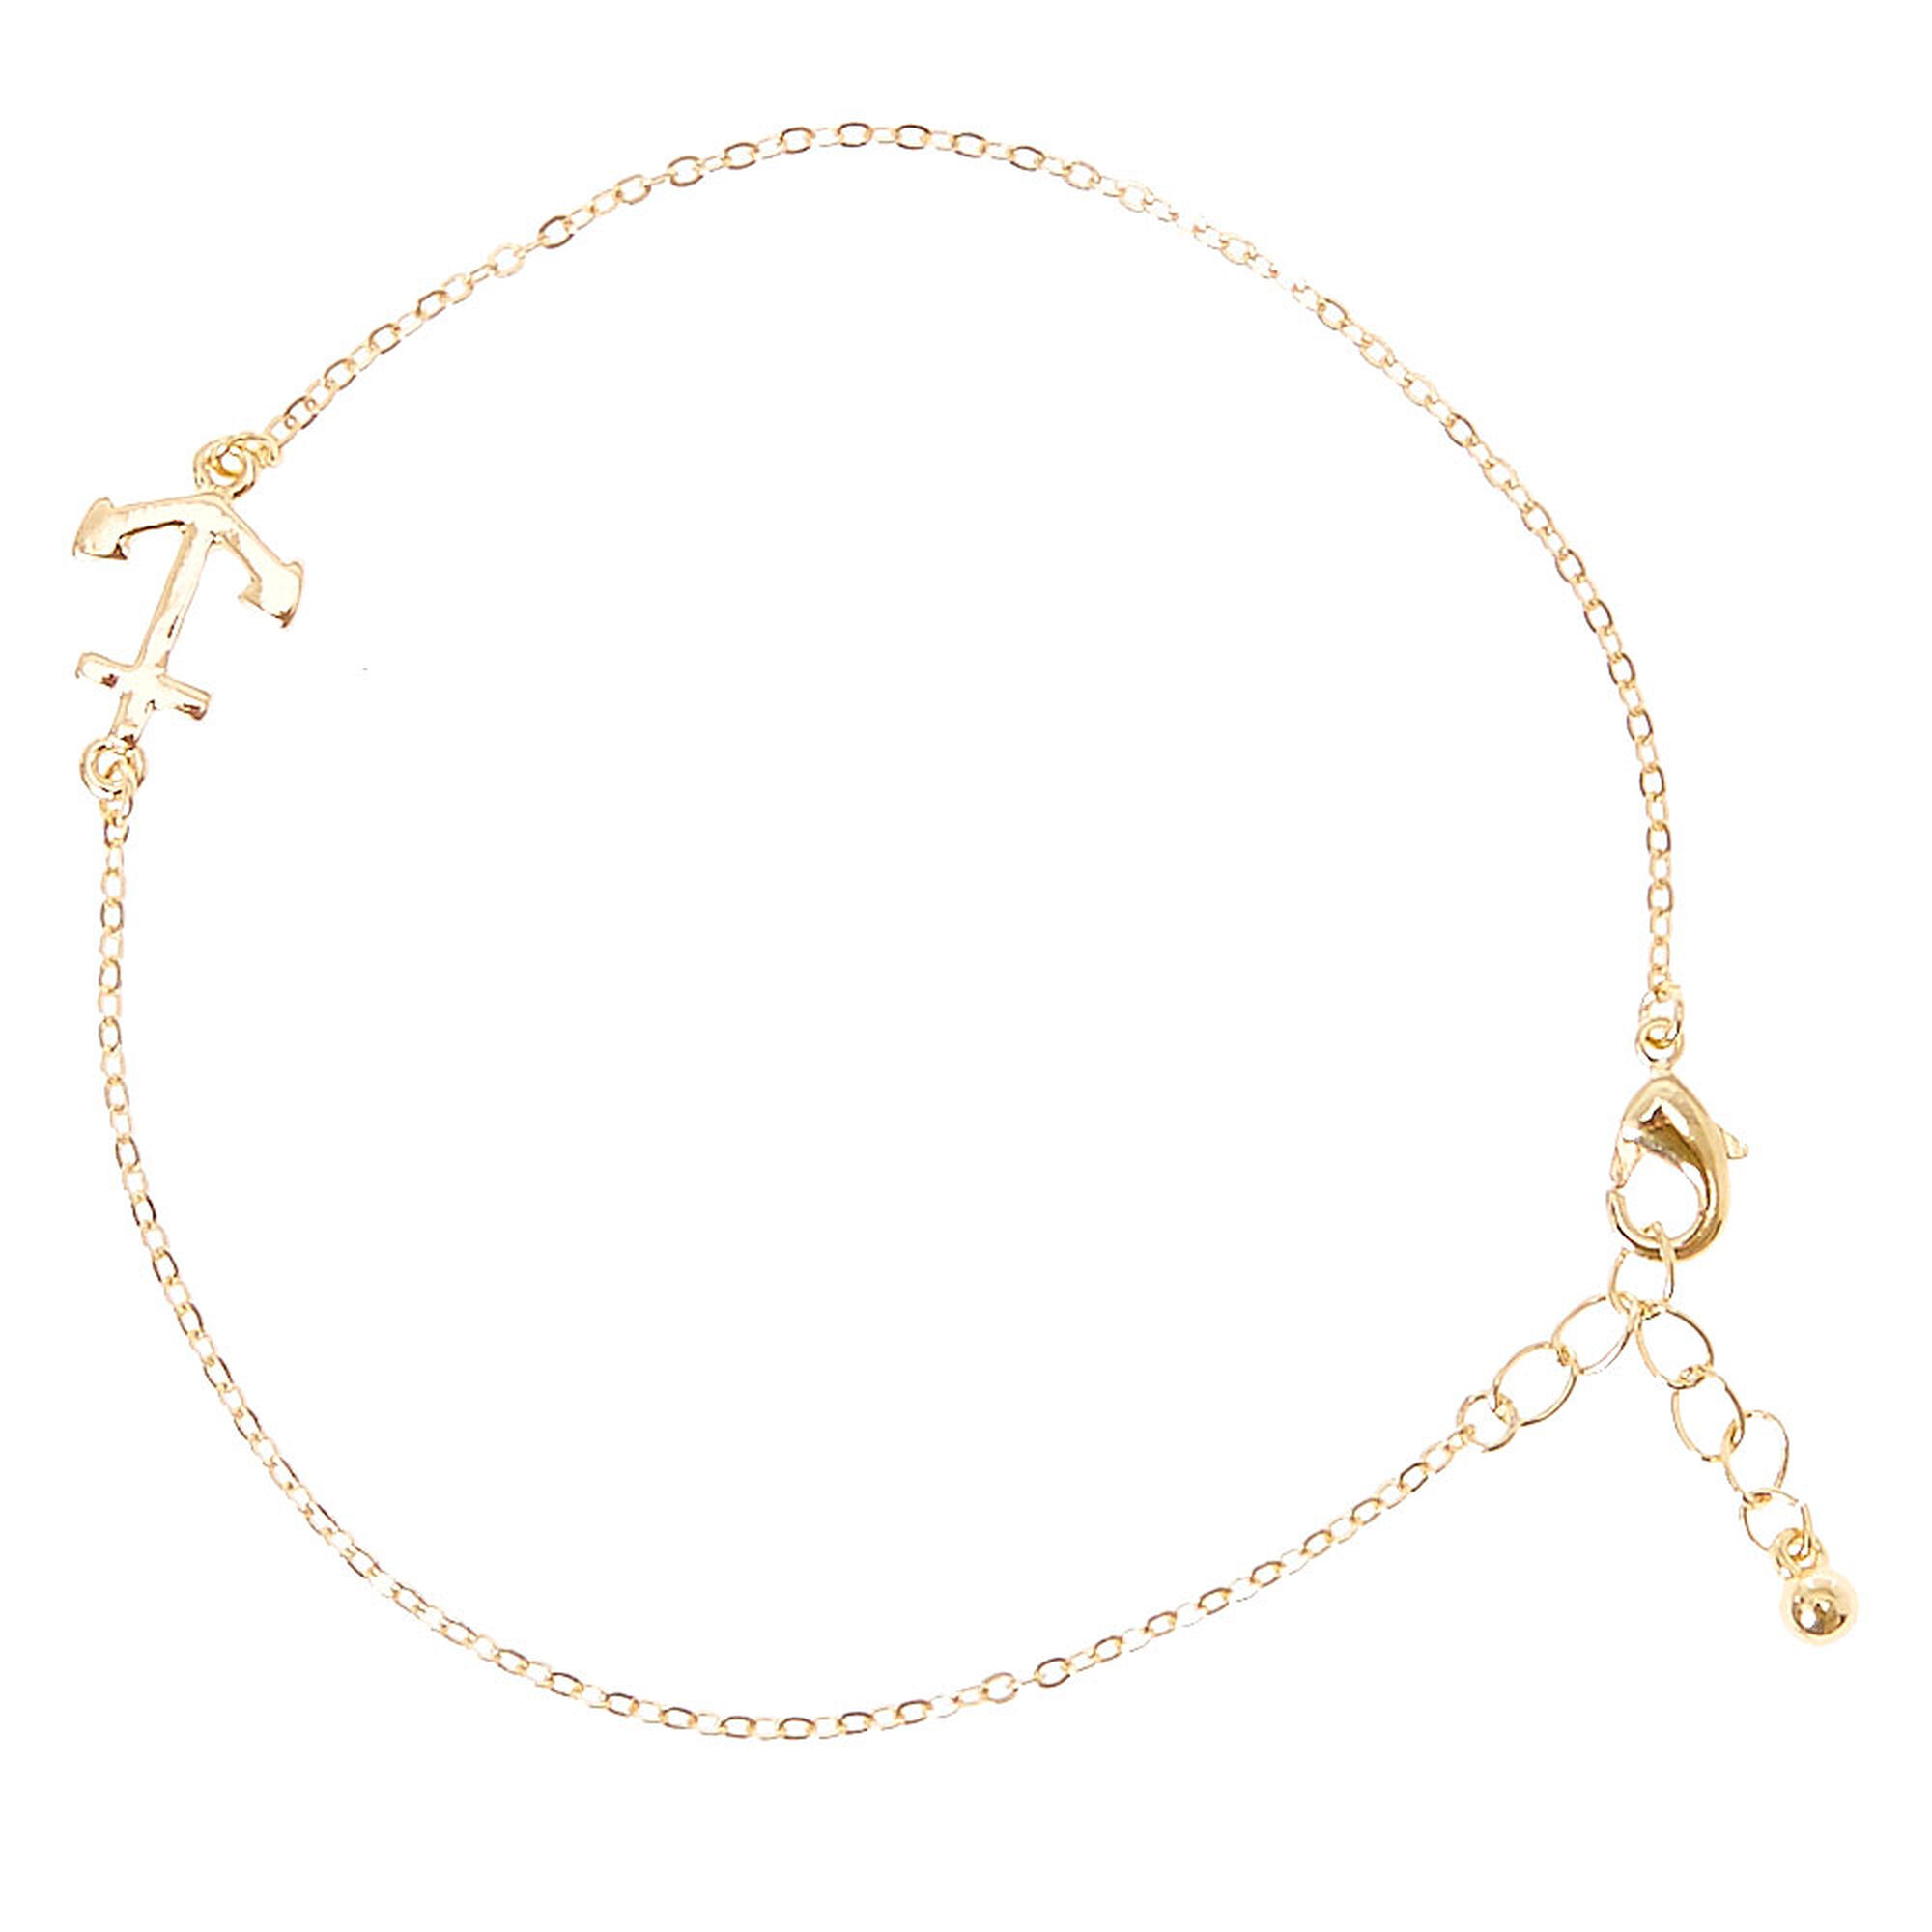 gold buehrlen arlette silver collections anchor chain swallow roz necklace jewellery products